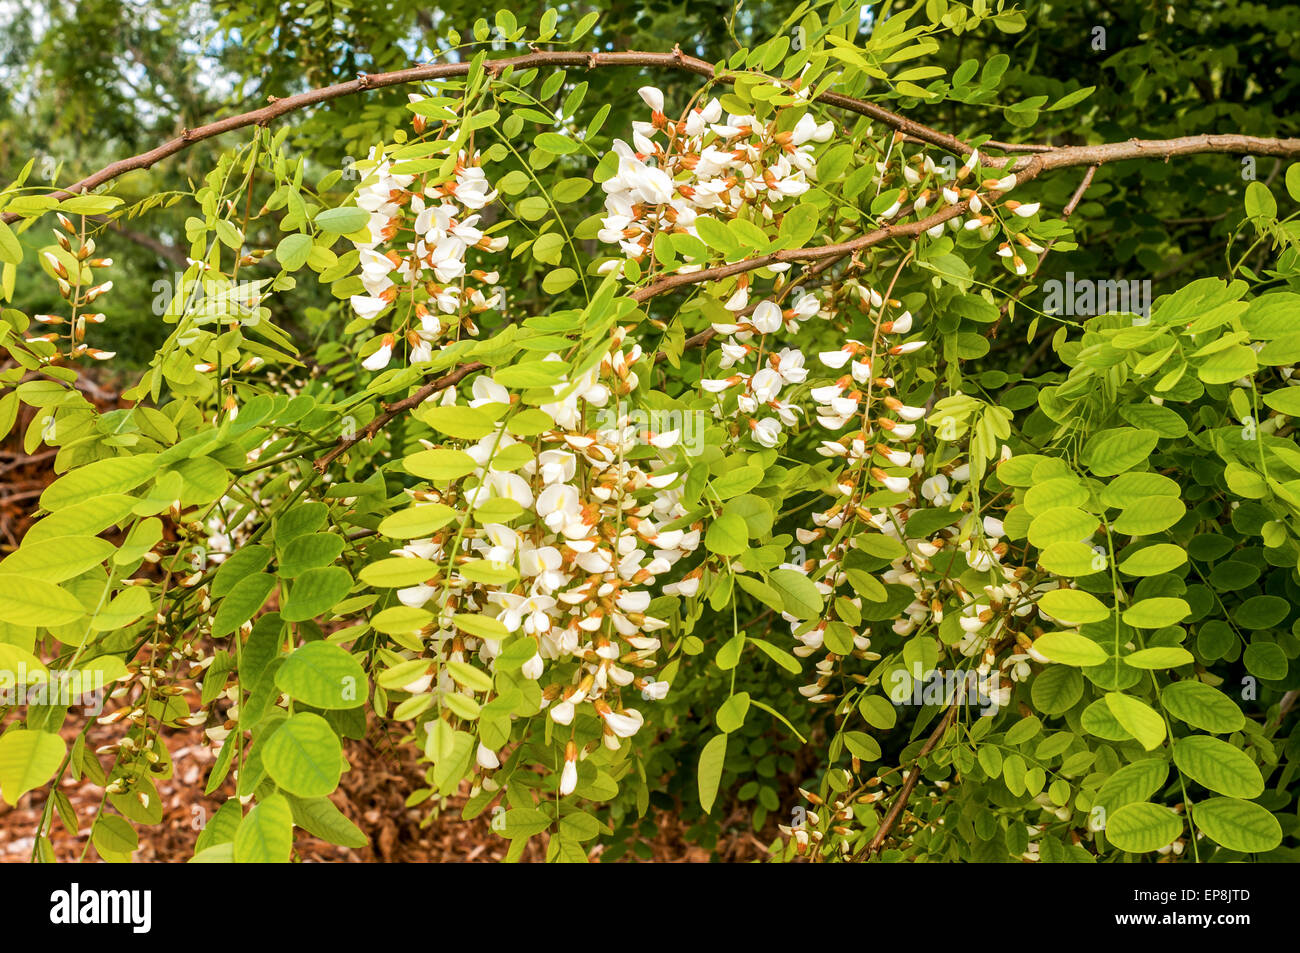 Acacia Tree Leaves And Flowers France Stock Photo 82554317 Alamy